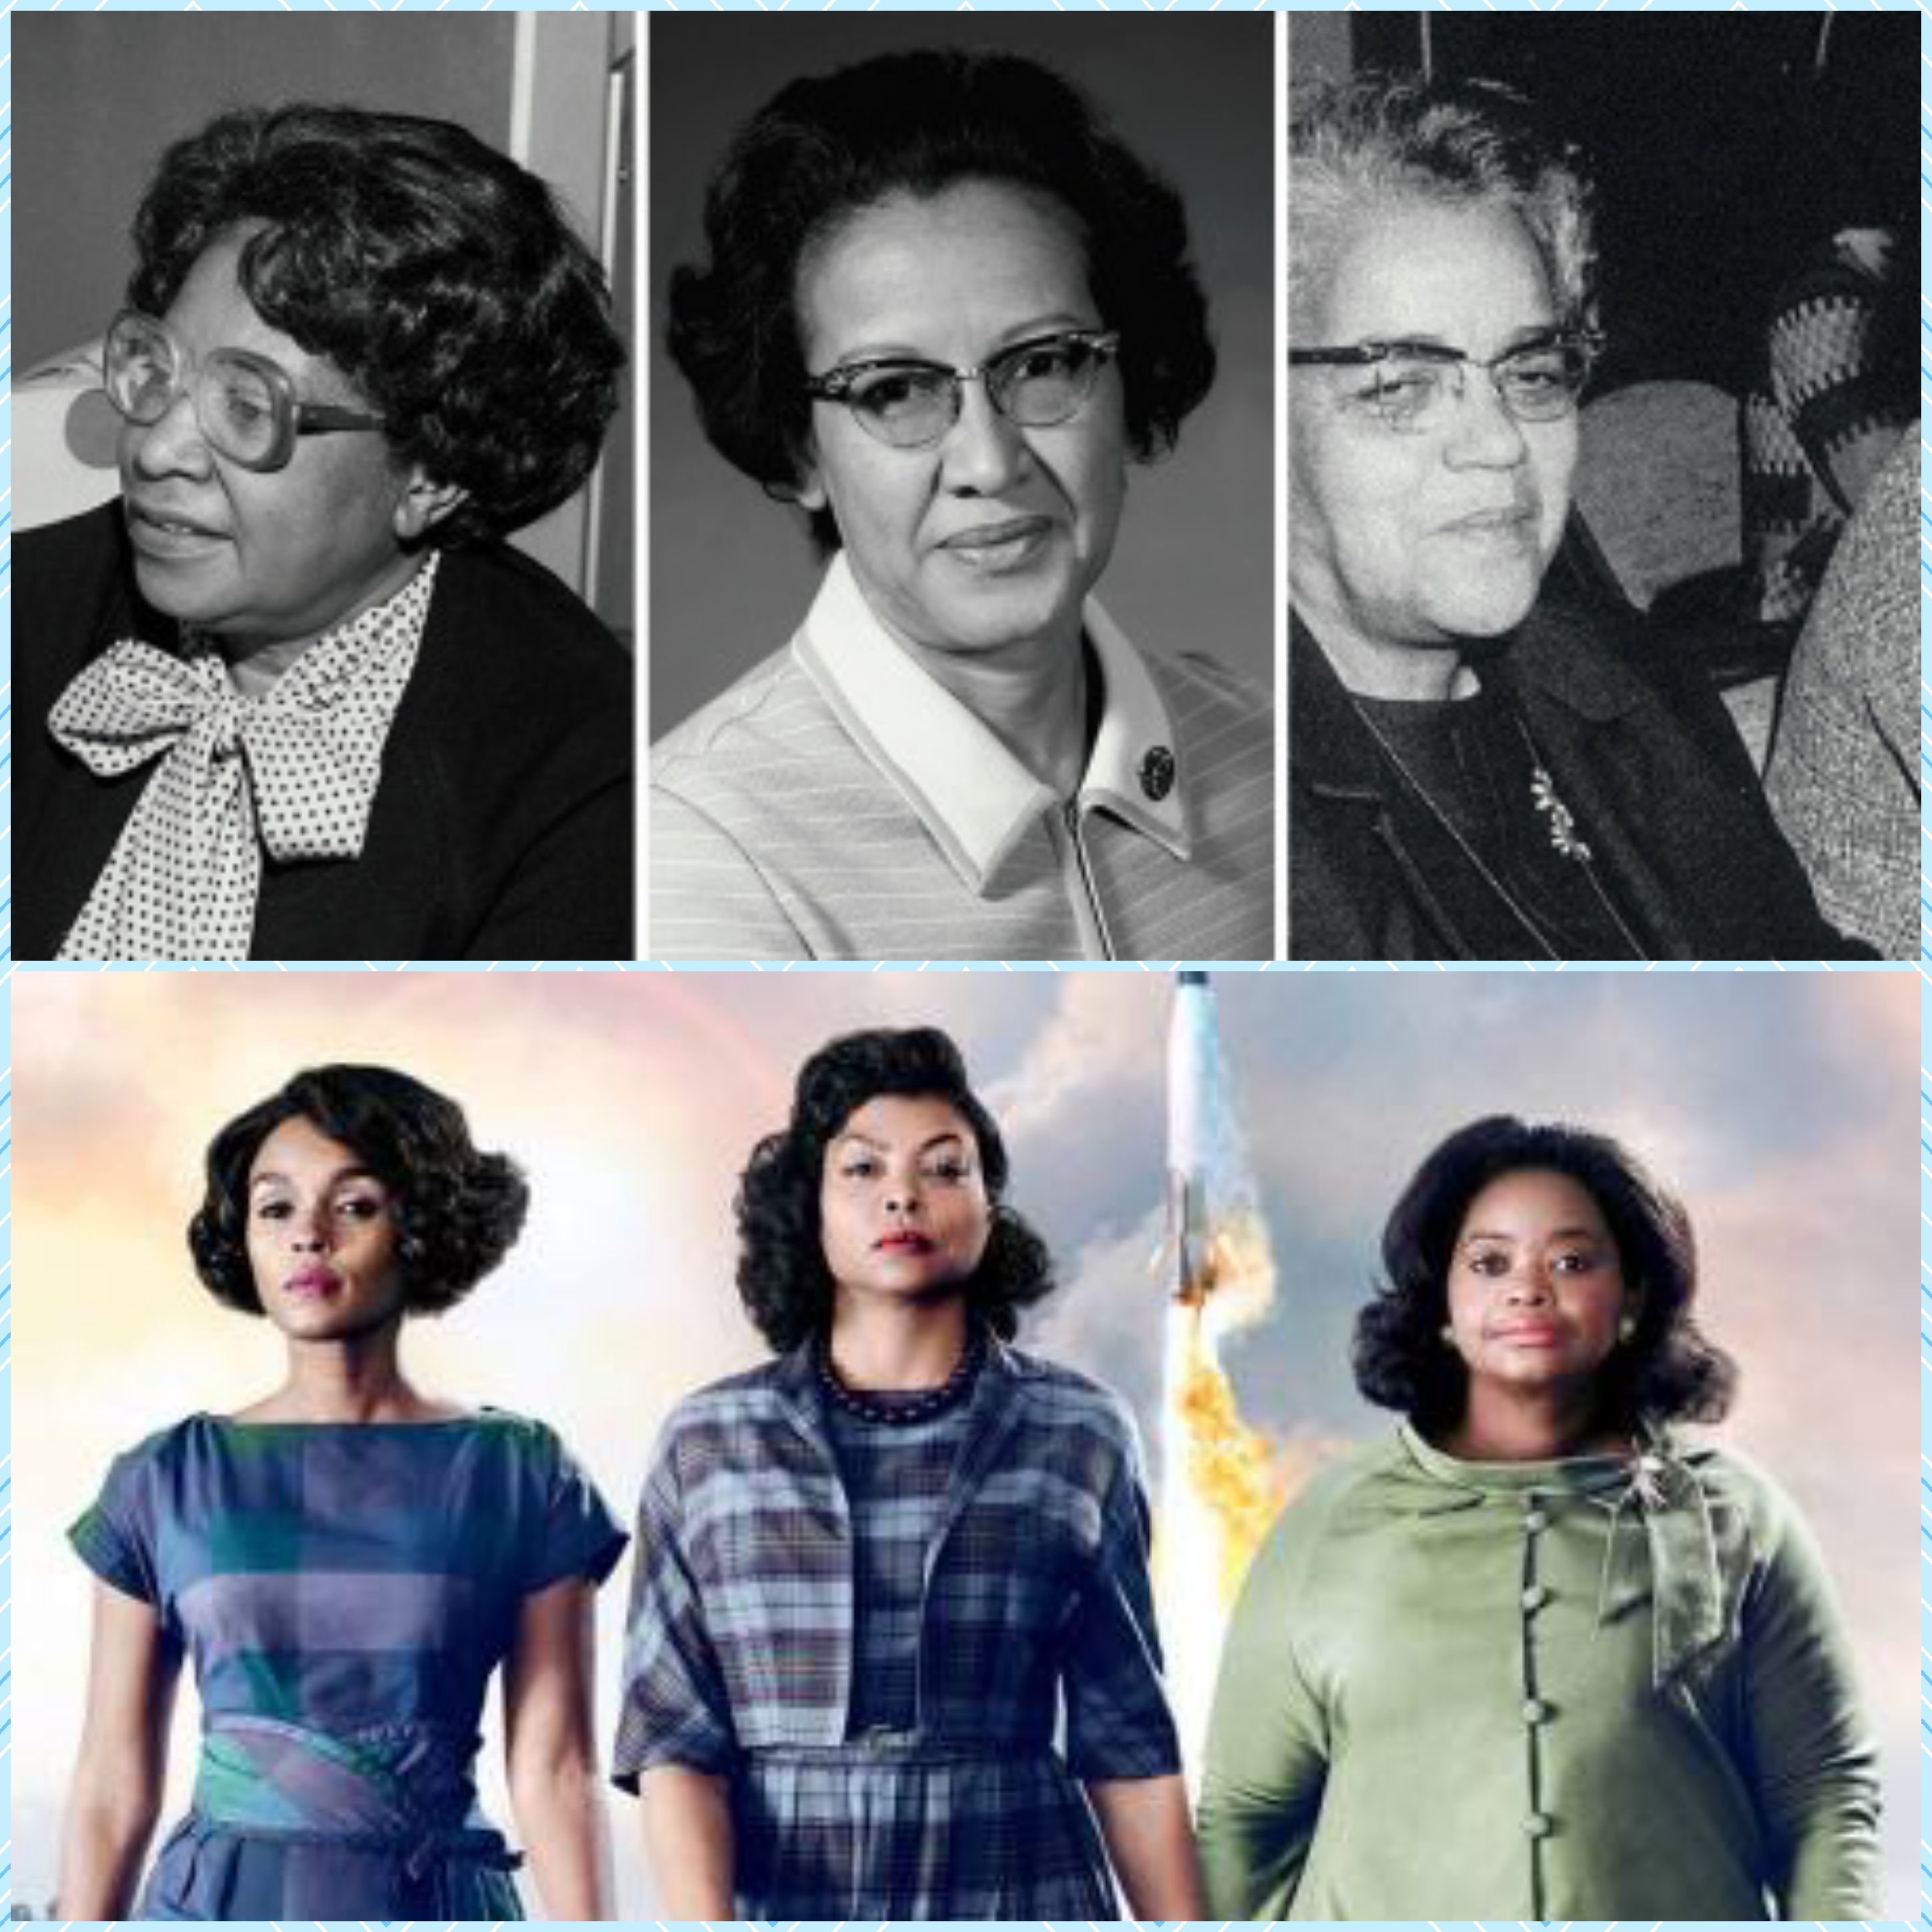 'Hidden Figures' & Dr. Martin Luther King Jr.: American Heroes with American Dreams